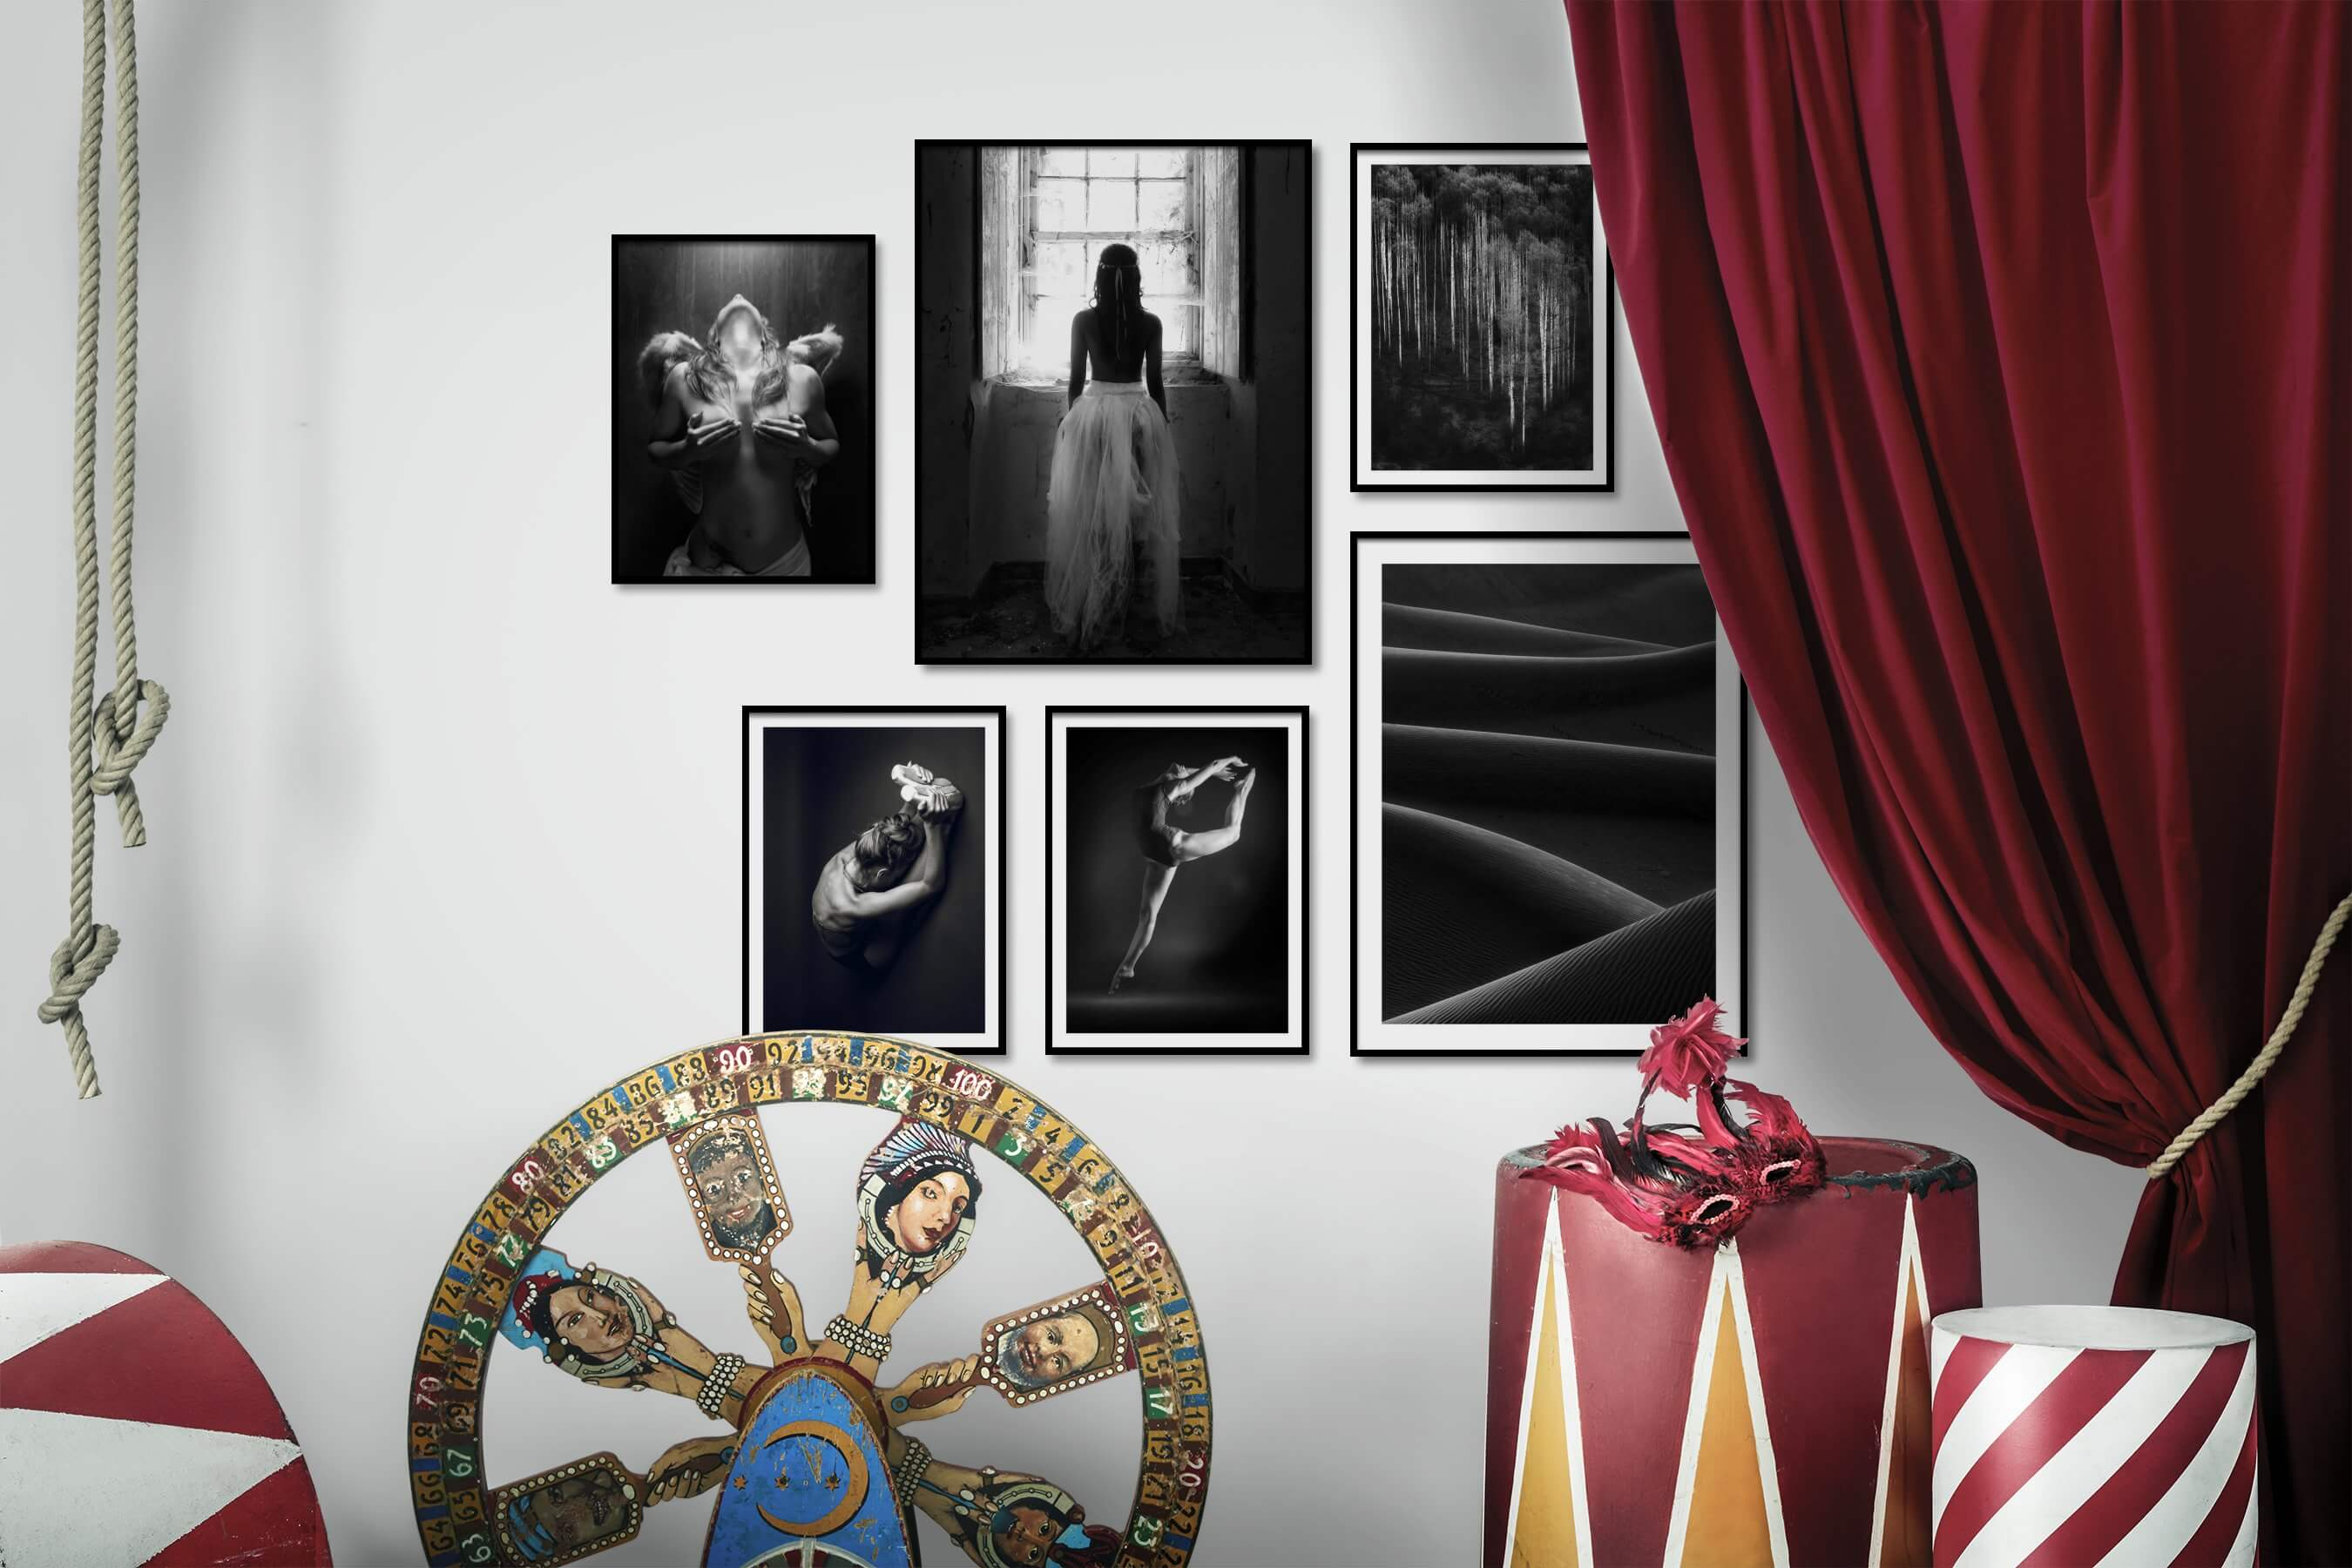 Gallery wall idea with six framed pictures arranged on a wall depicting Fashion & Beauty, Black & White, Dark Tones, For the Minimalist, For the Moderate, and Nature